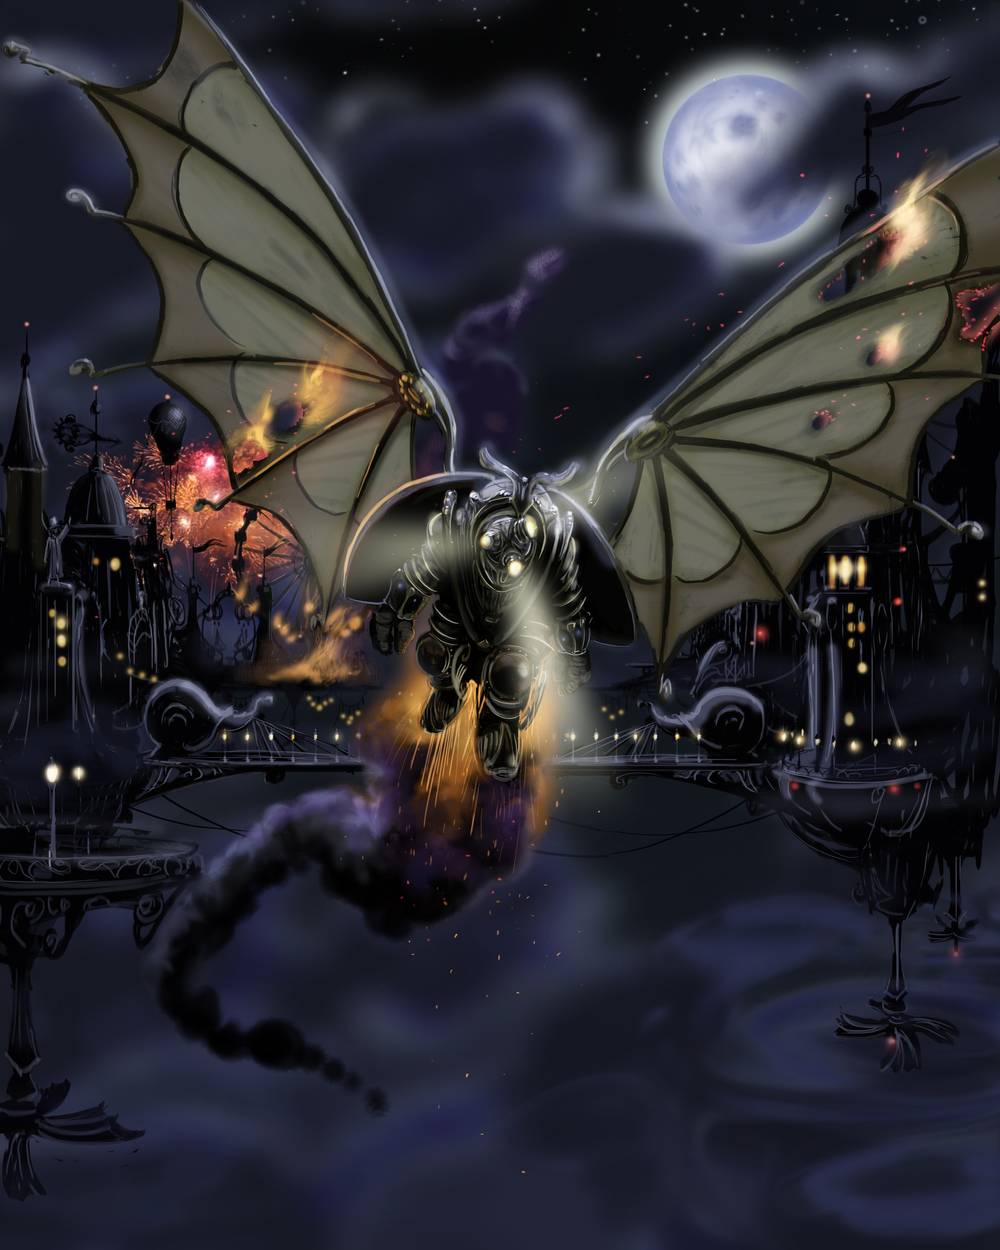 mothman in flight.jpg